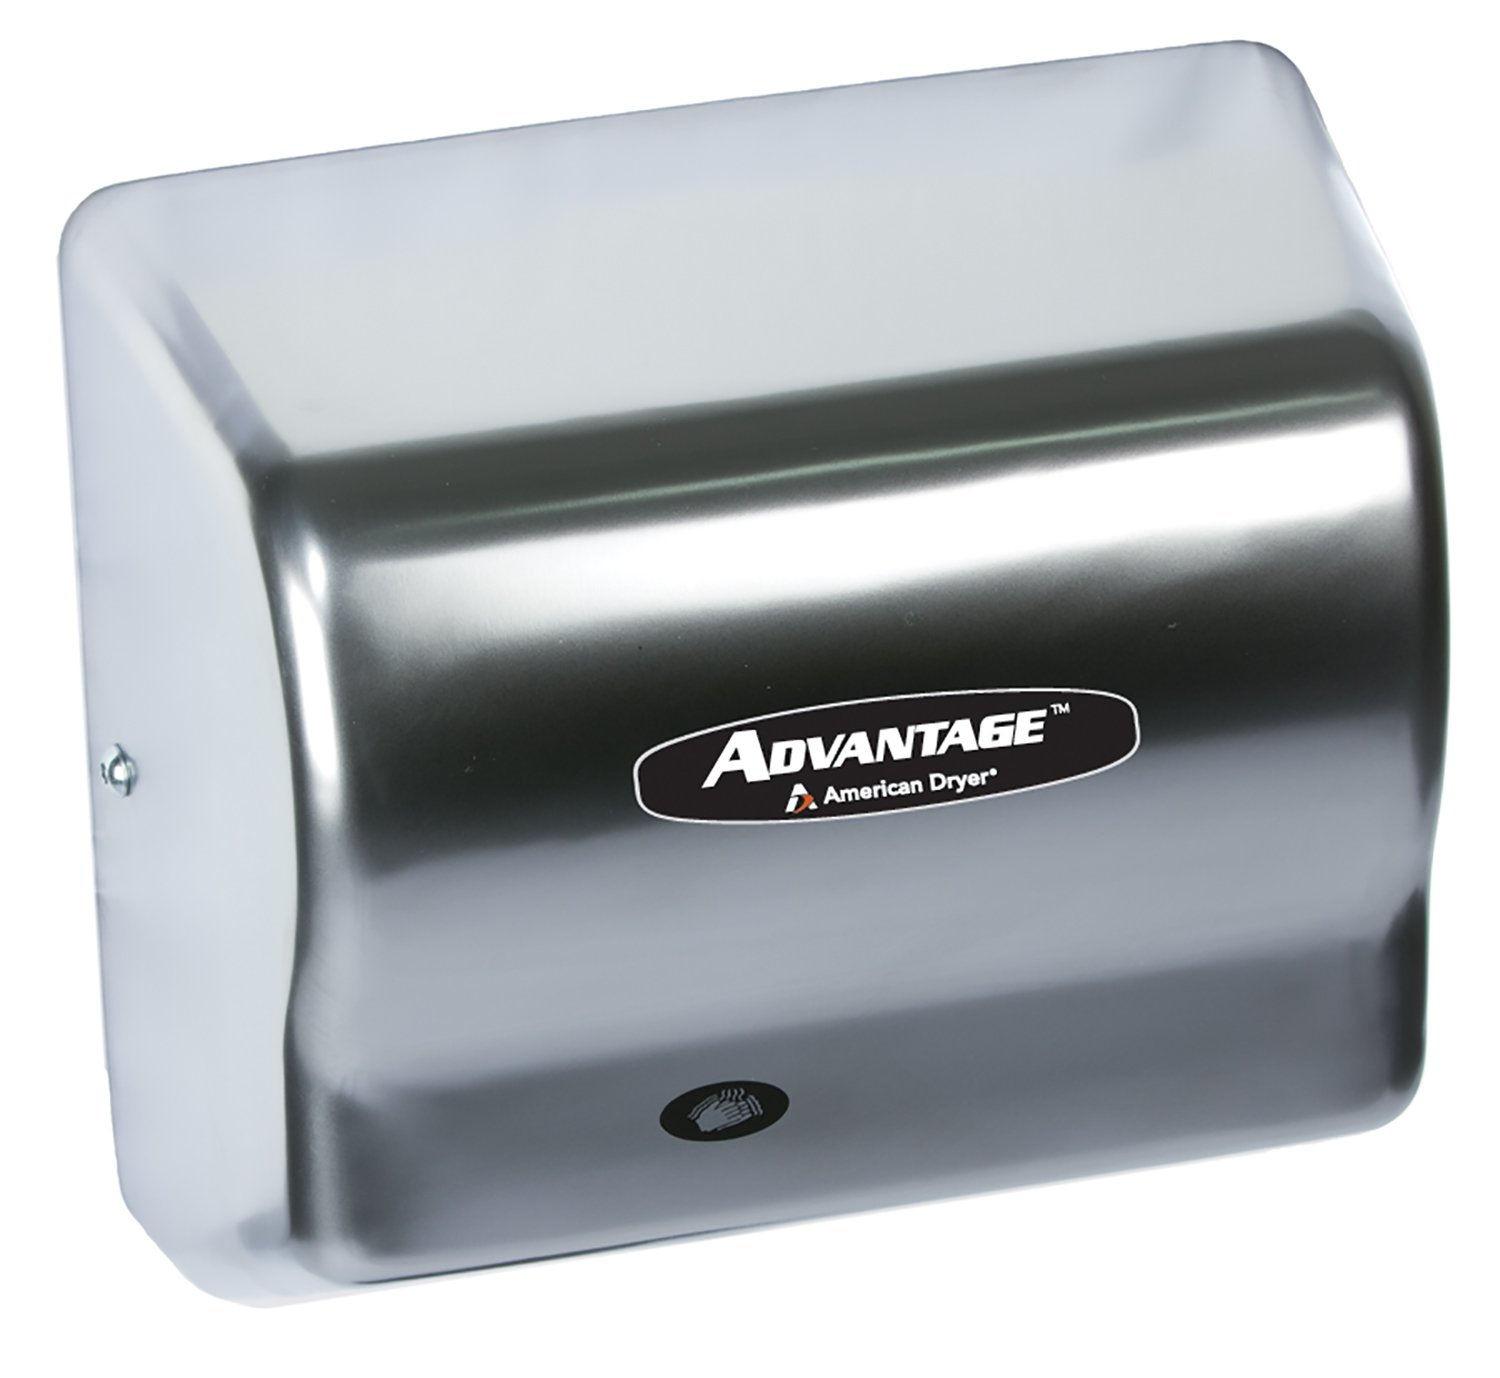 American Dryer AD90-SS Advantage Stainless Steel Standard Automatic Hand Dryer, 4 Brush Finish, 1/8 HP Motor, 100-240V, 5-5/8'' Length x 10-1/8'' Width x 9-3/8'' Height